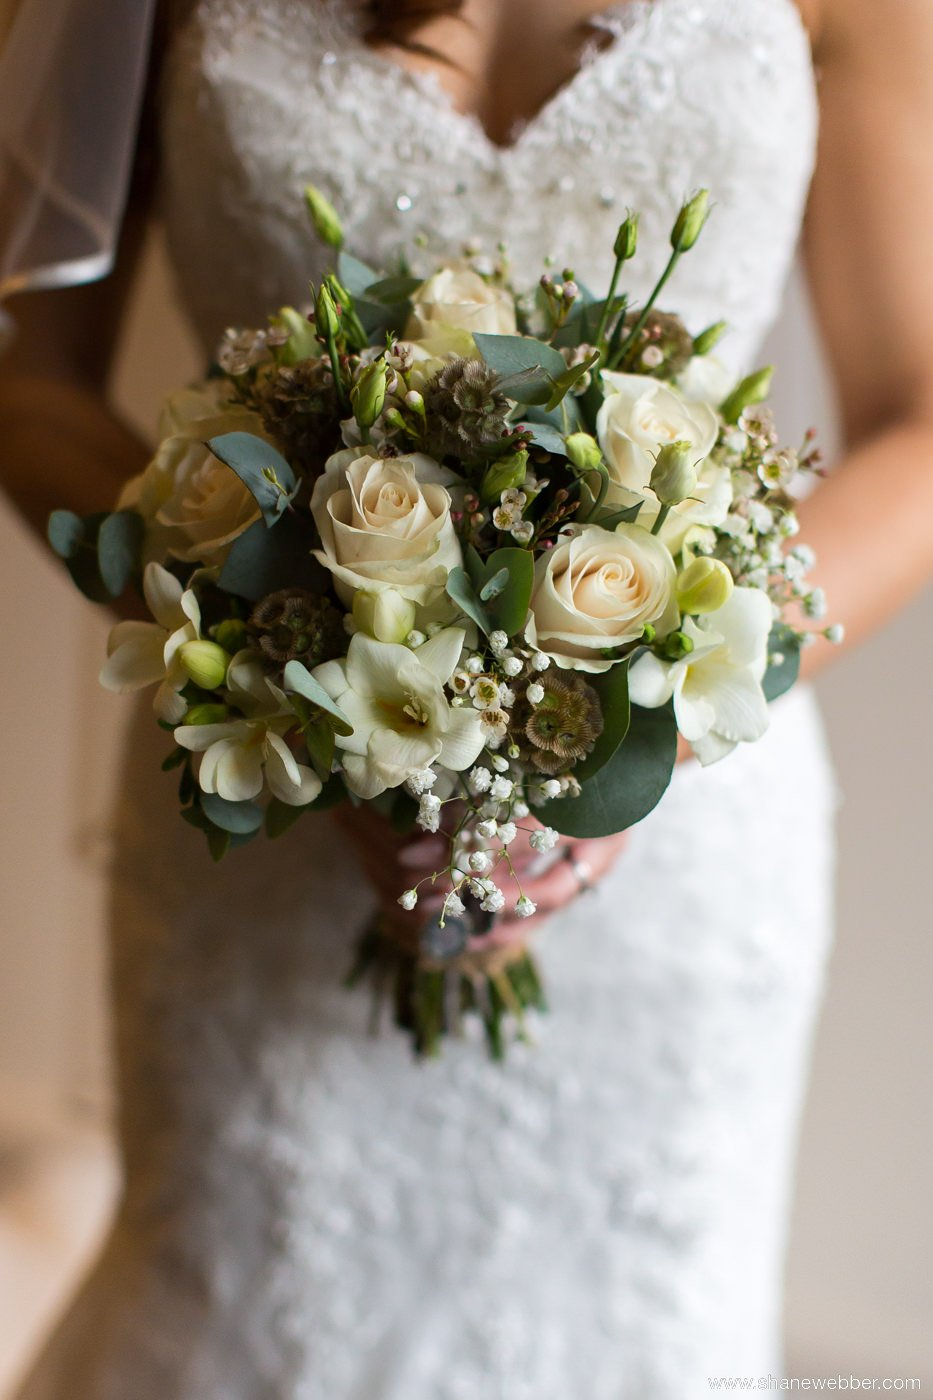 Photograph of bridal flowers